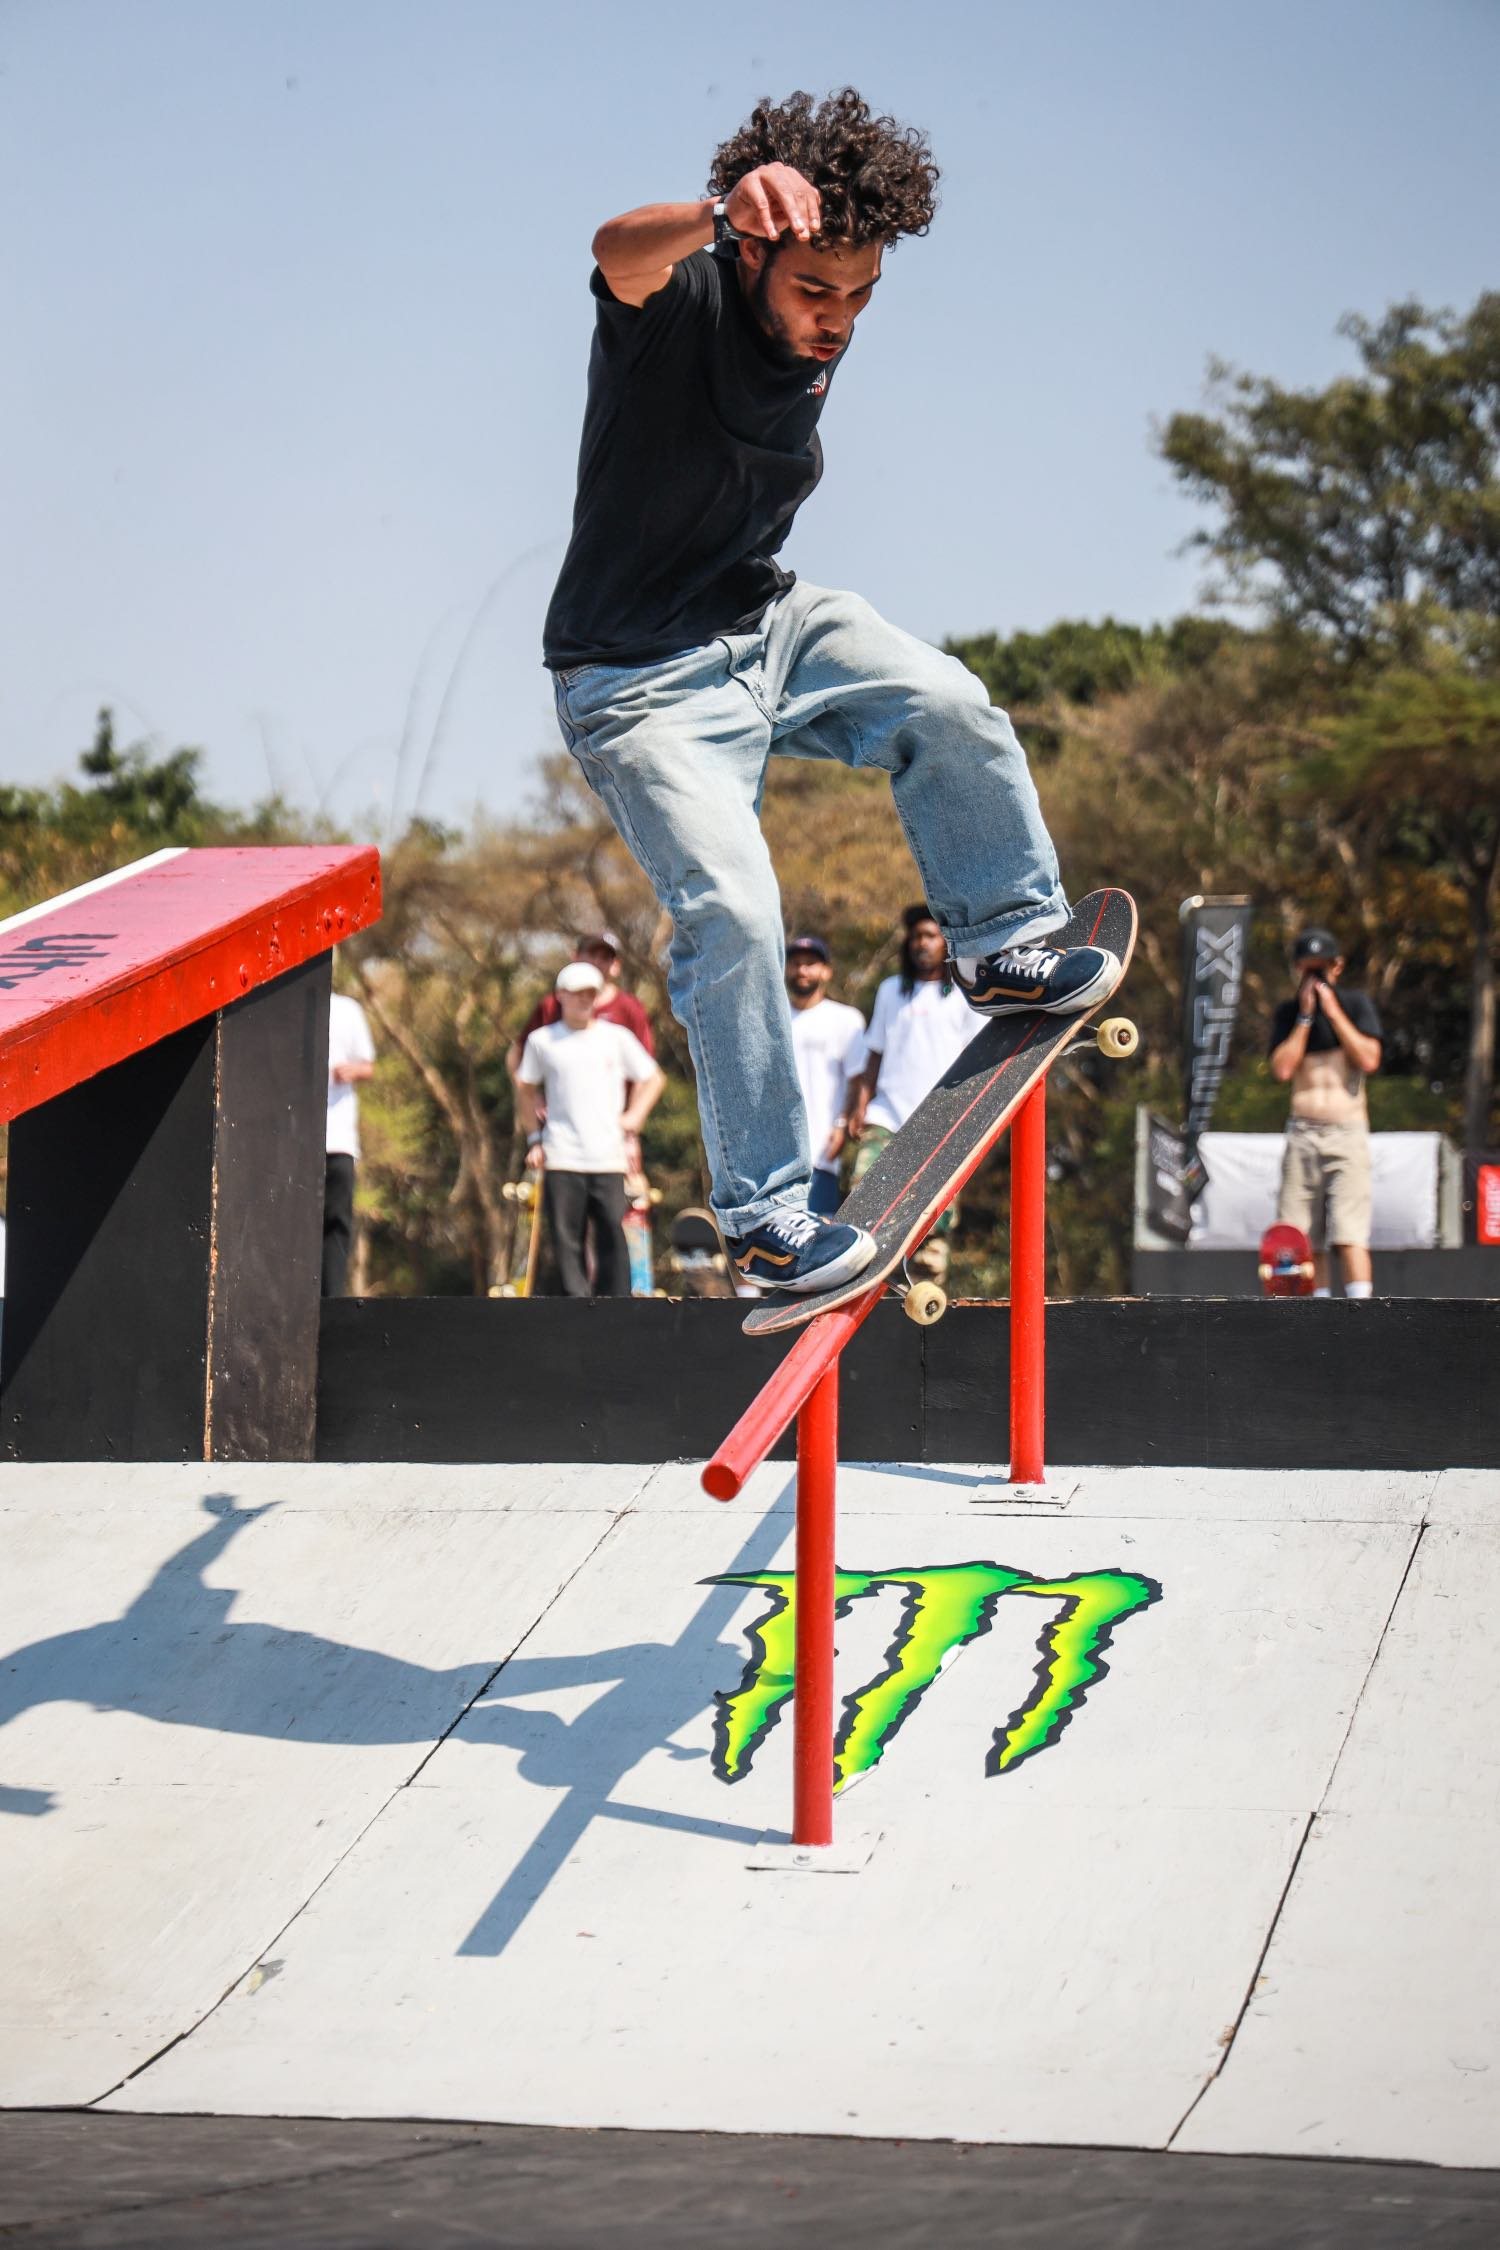 Ethan Cairns competing in the Skate contest at ULT.X 2021